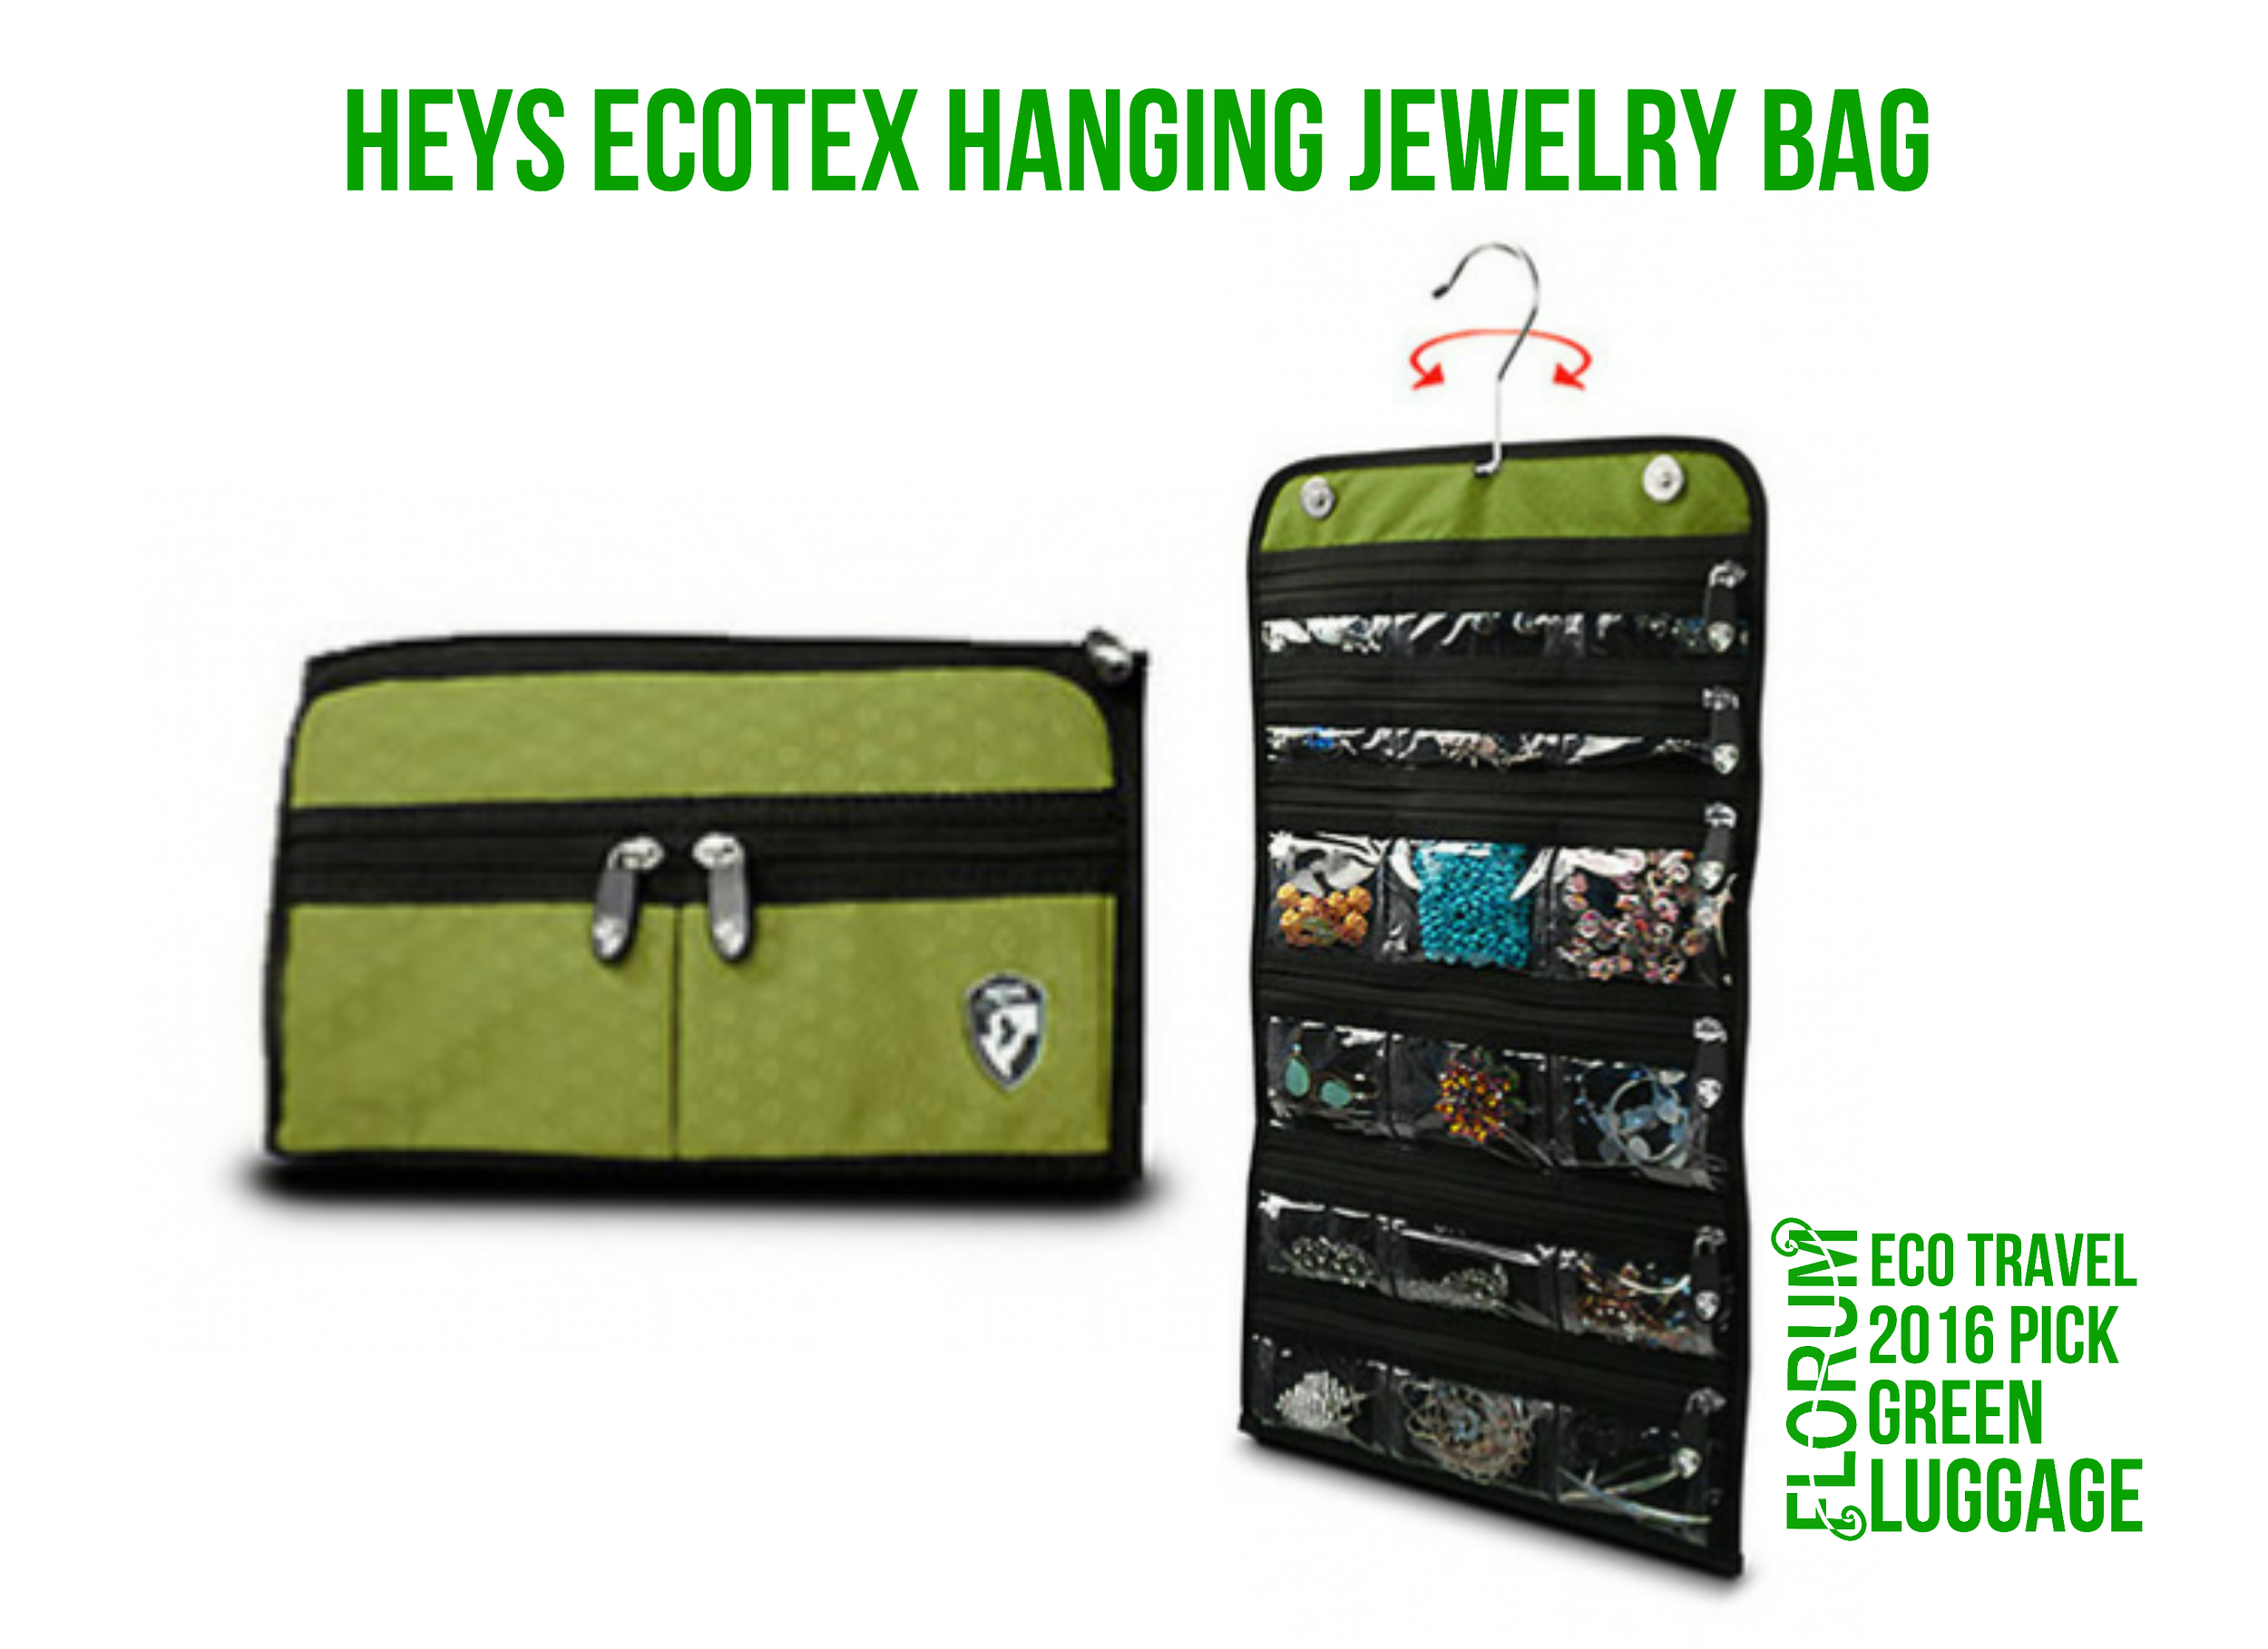 Florum Eco Travel 2016 Green Luggage Pick - Heys EcoTex Hanging Jewelry Bag - Noelle Lynne.png